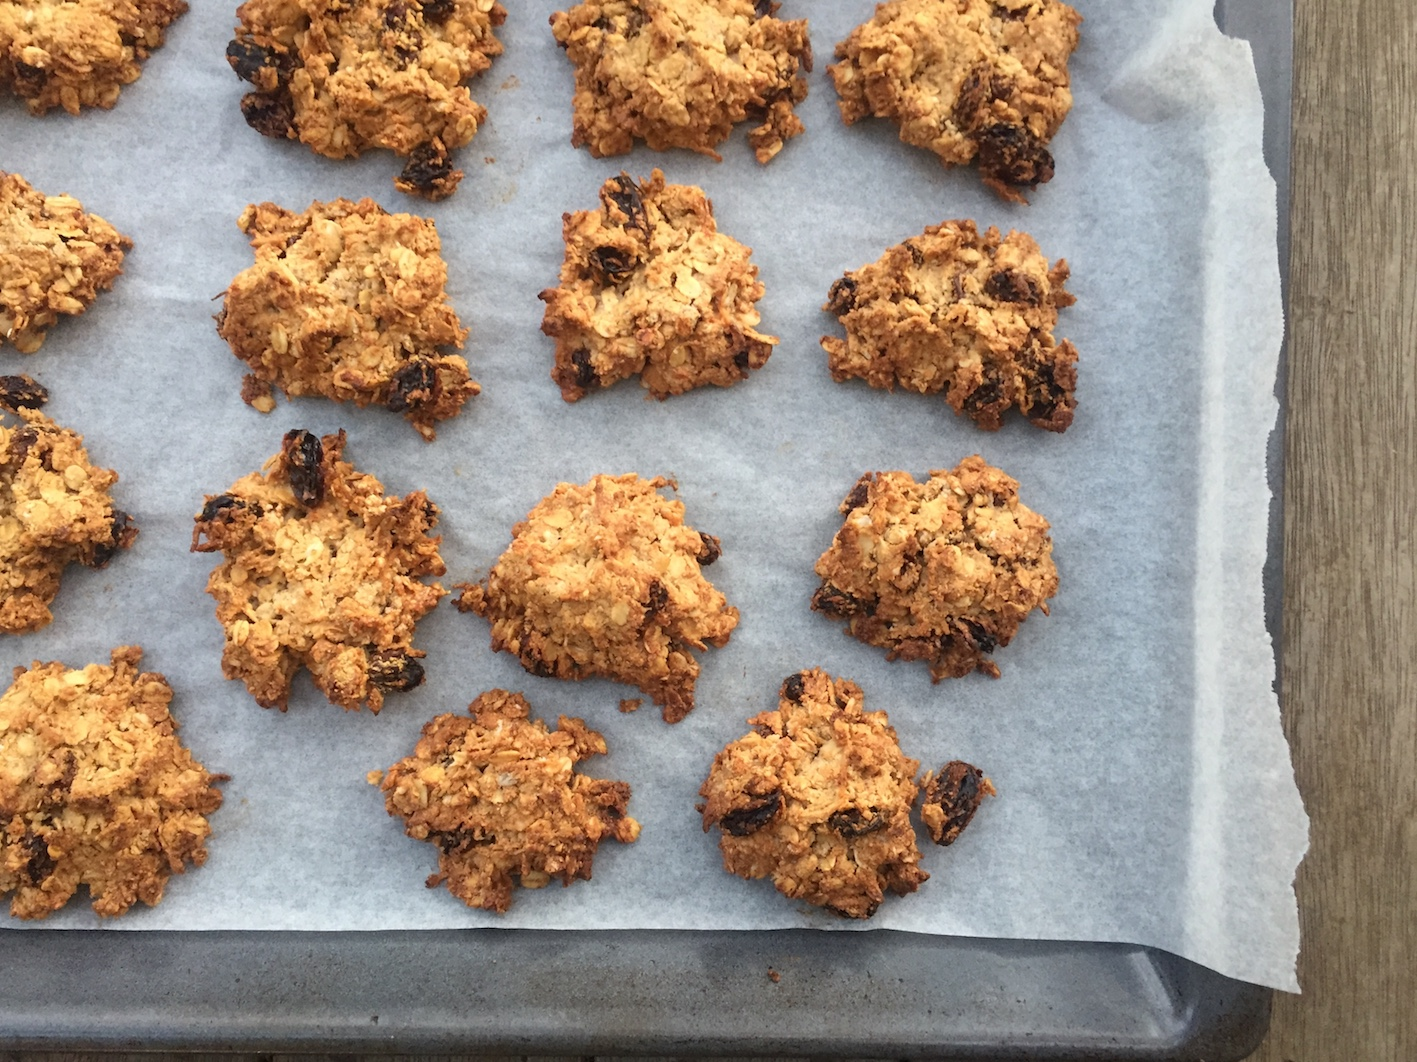 The finished product - deliciously satisfying nutty muesli cookies